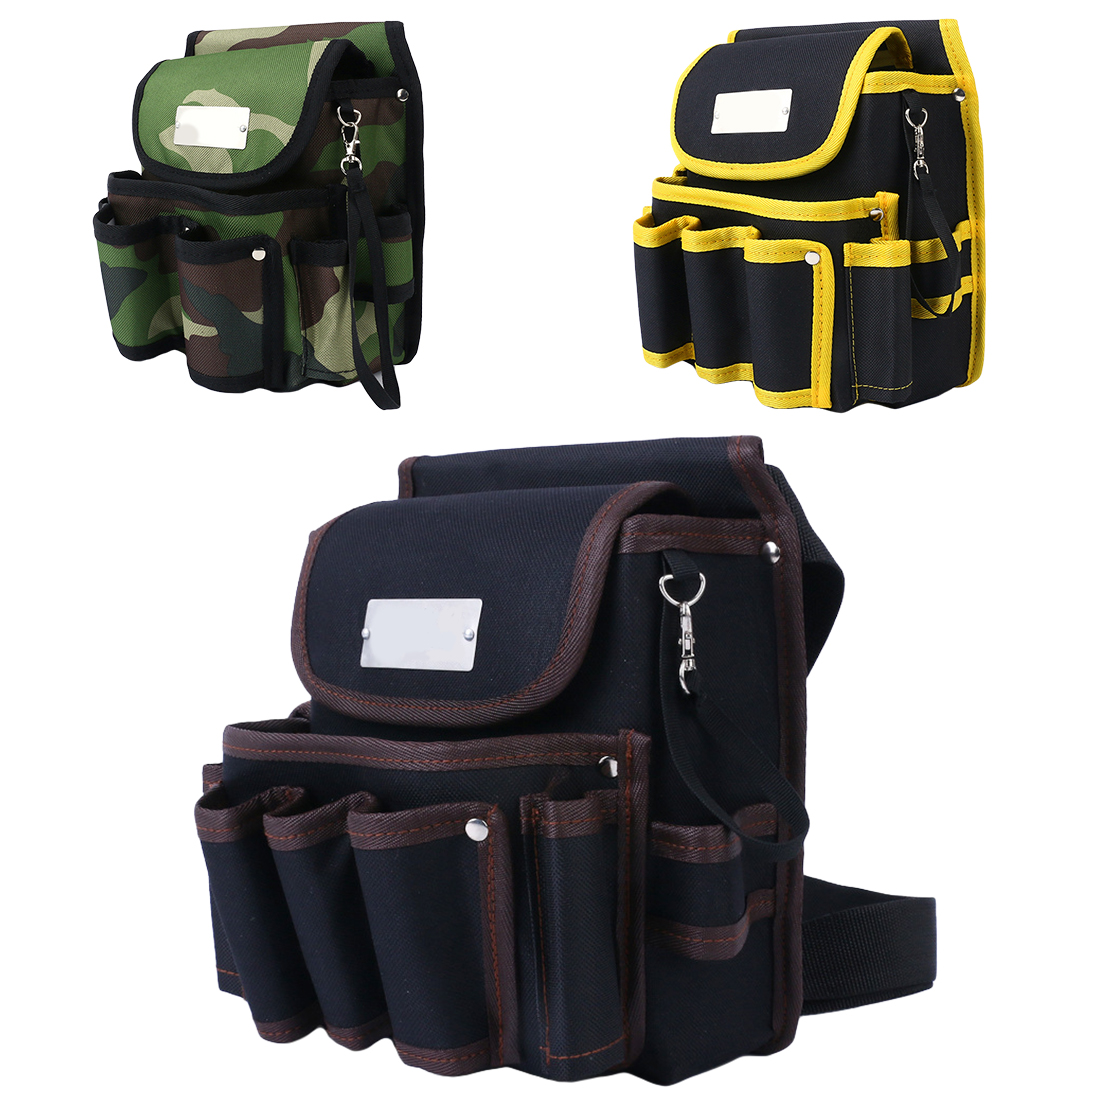 Telecommunications Holder Electrician 600D Water Proof Cloth Rivet Fixed Tool Bag Belt Utility Kit Pocket Pouch